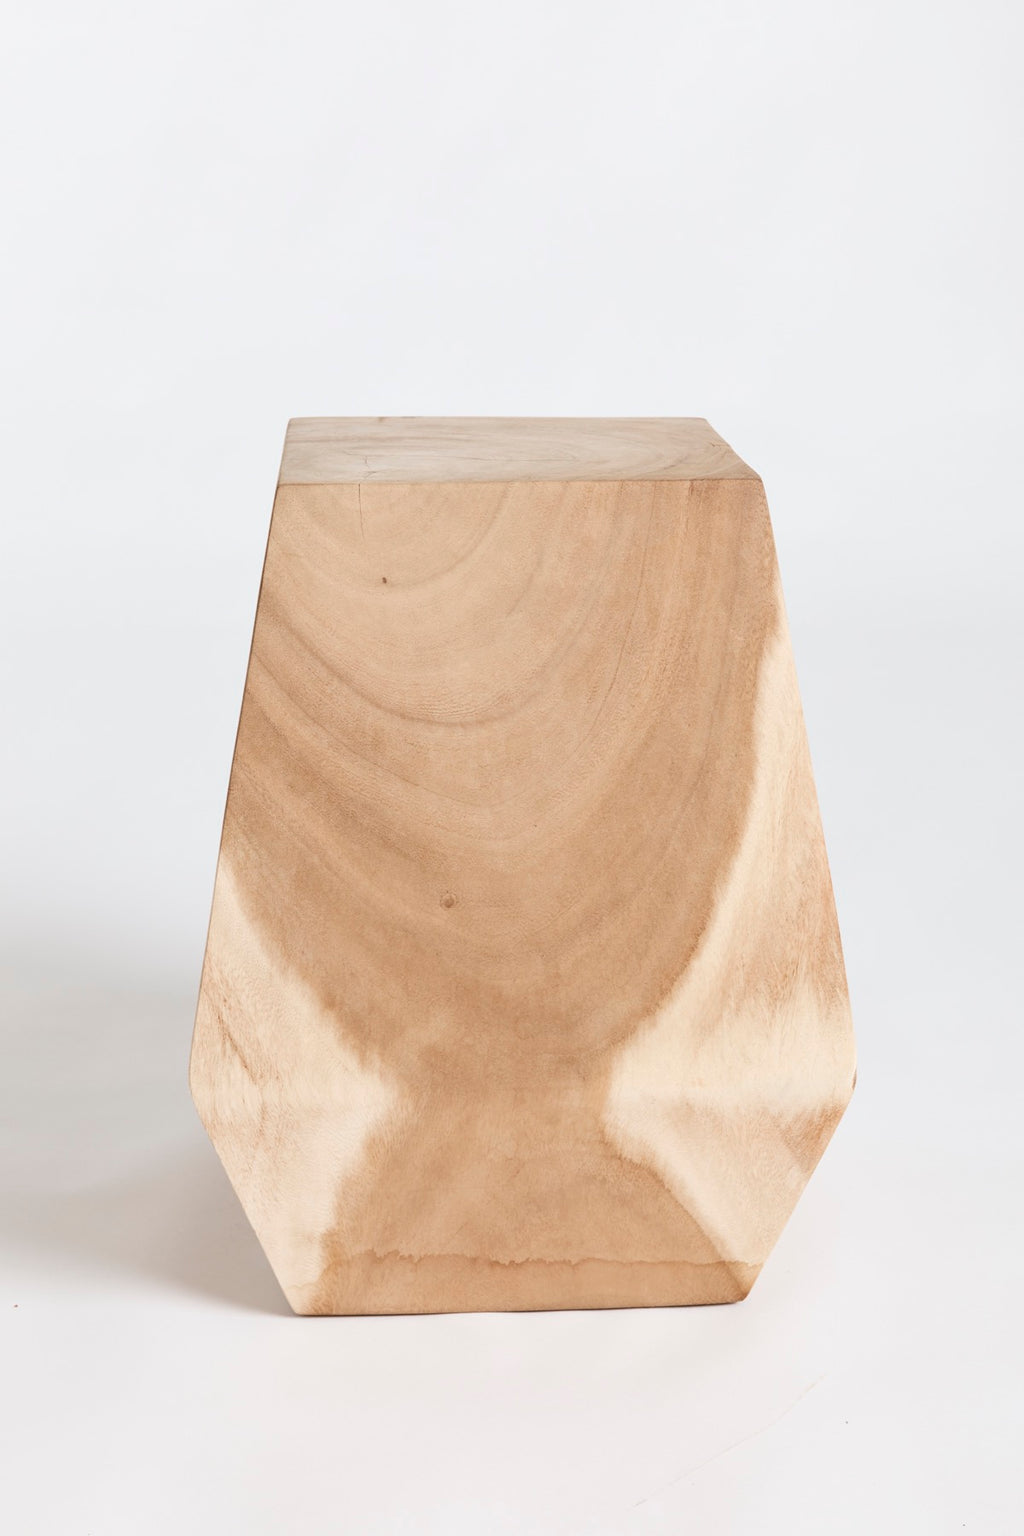 The Volute Tabouret